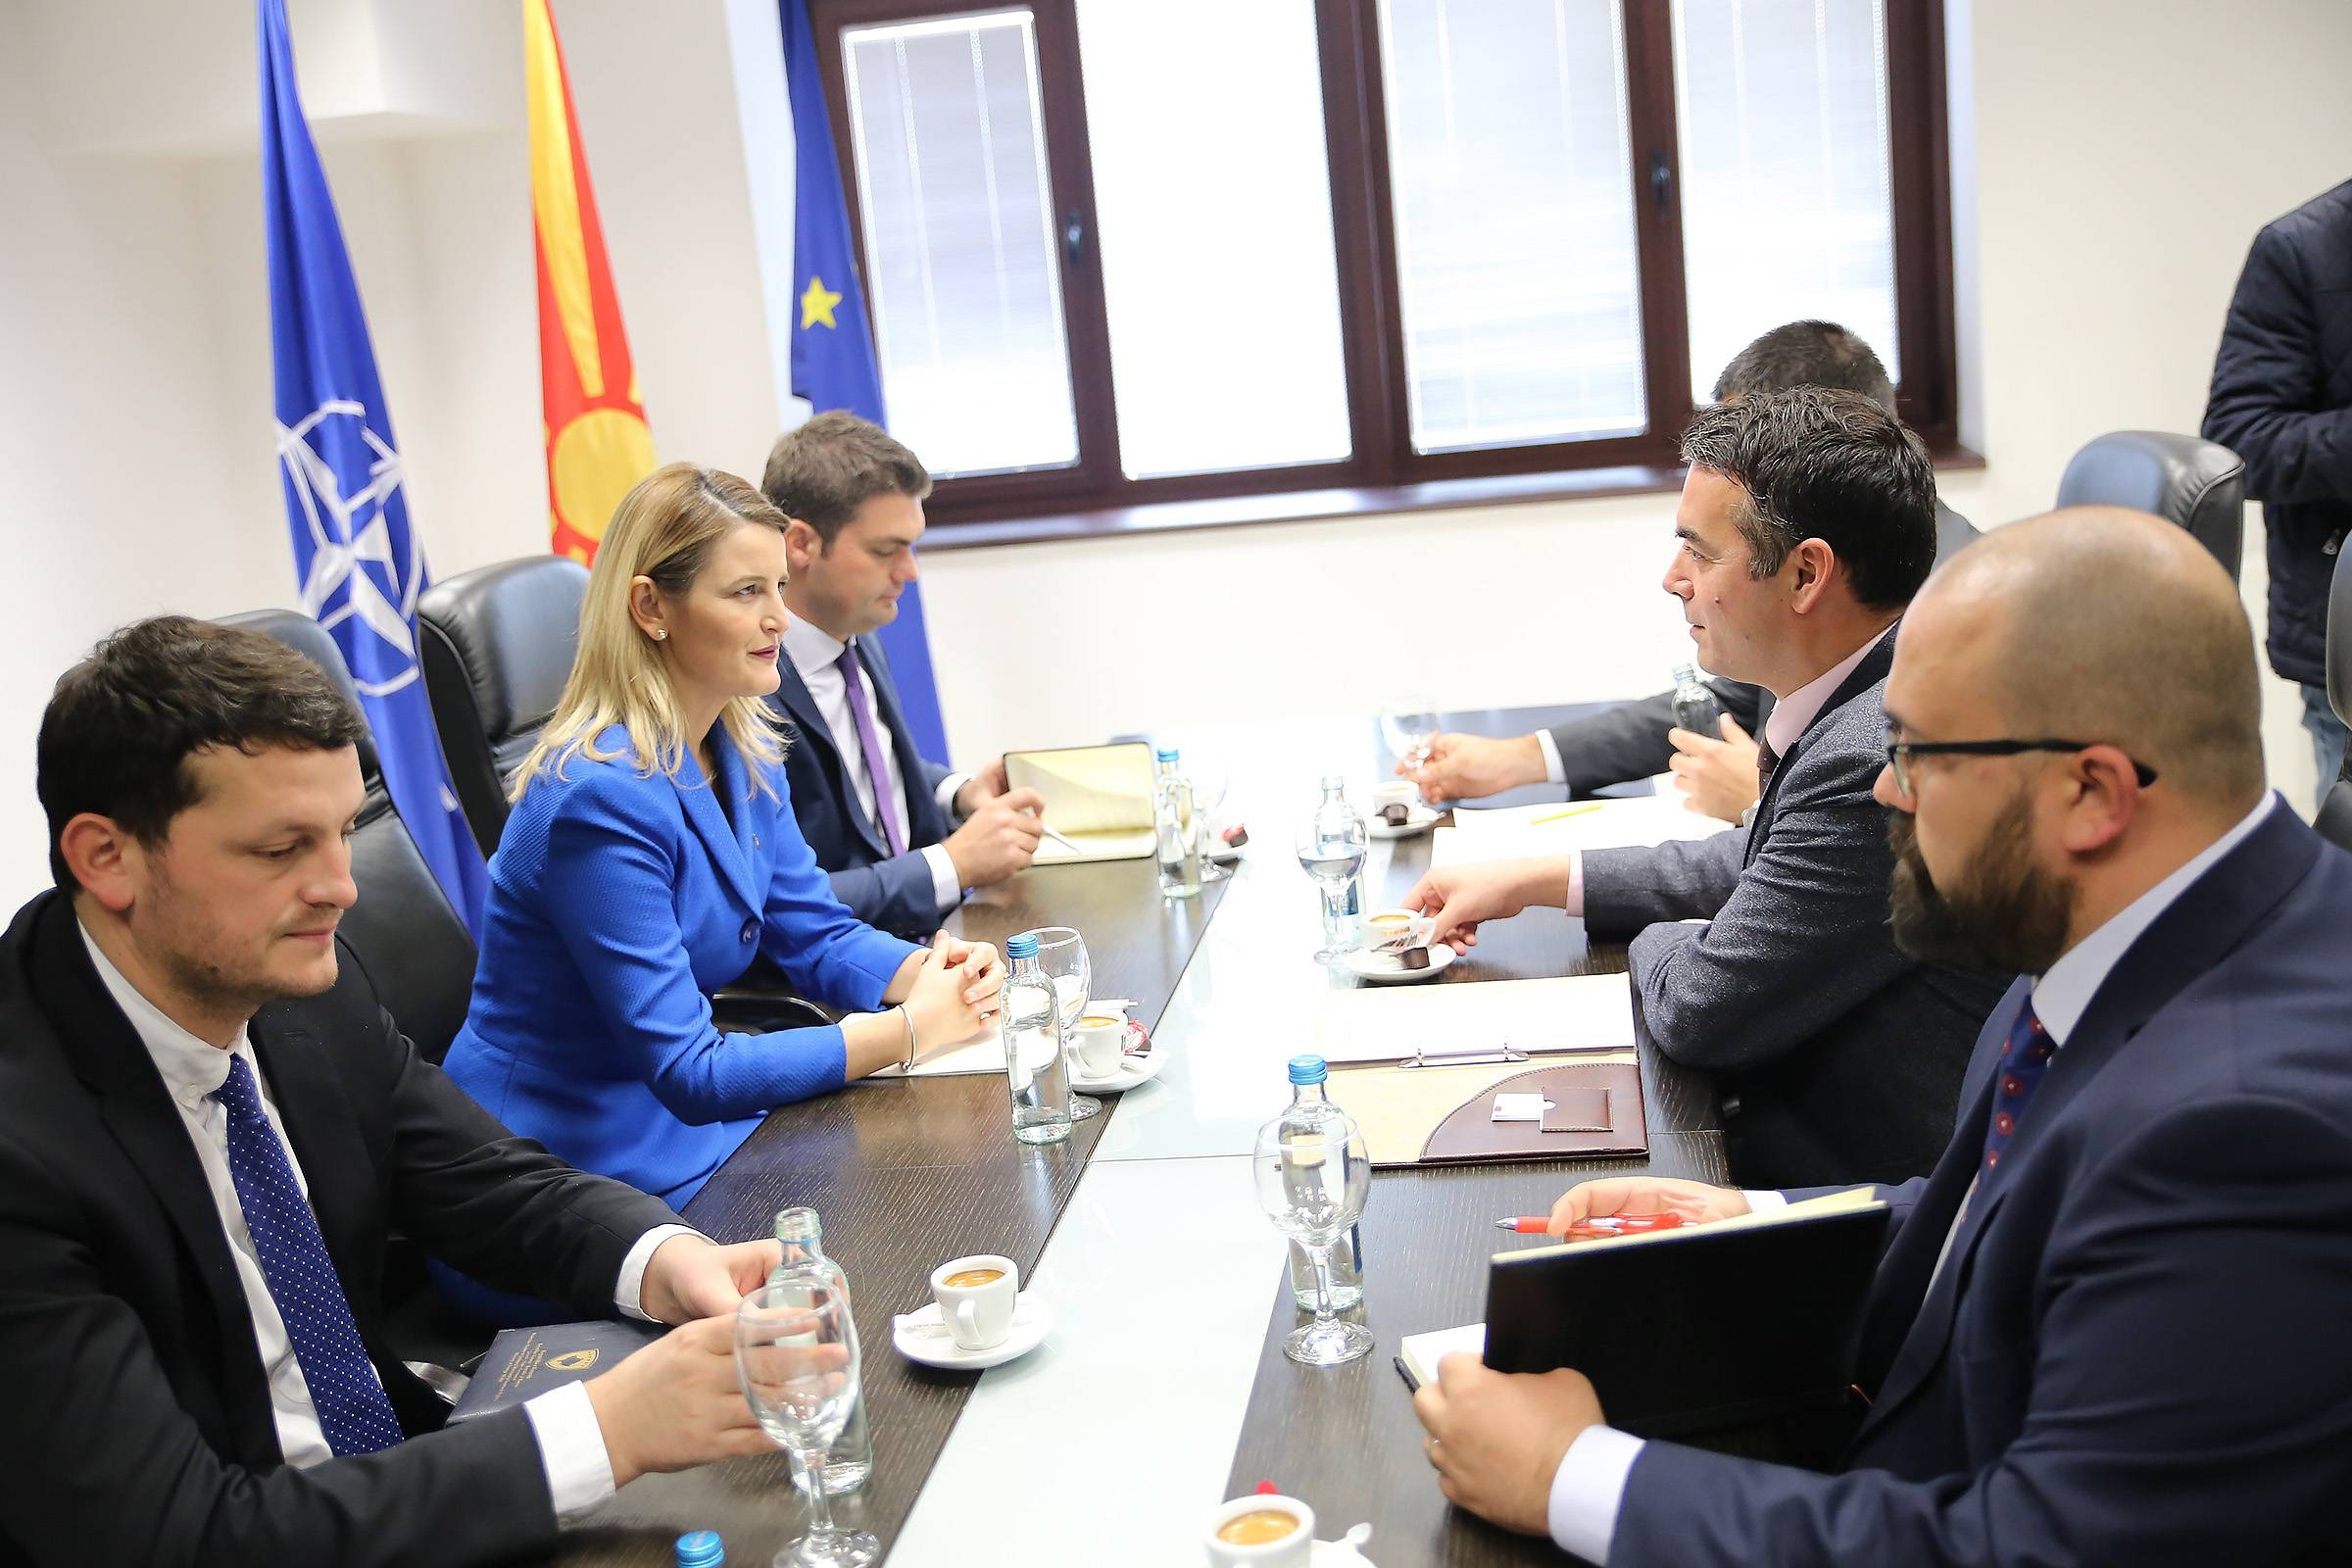 Minister of European Integration, Dhurata Hoxha met with Macedonia's chief diplomat, Nicola Dimitrov